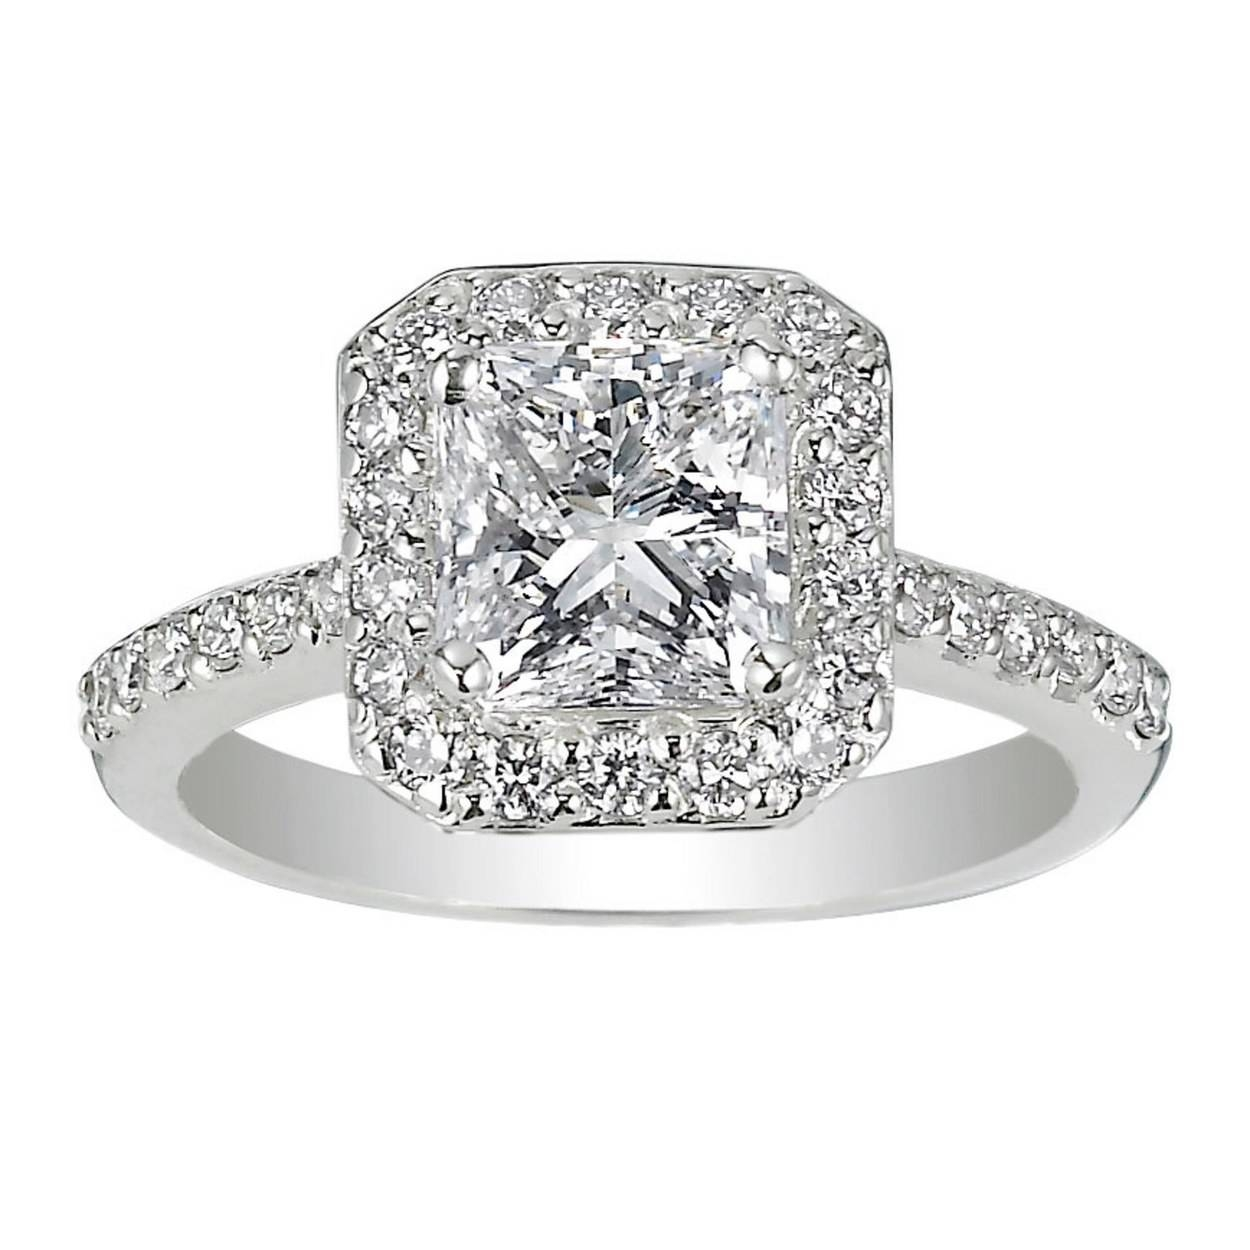 62 Diamond Engagement Rings Under $5,000 | Glamour Regarding Five Diamond Engagement Ring (View 2 of 15)